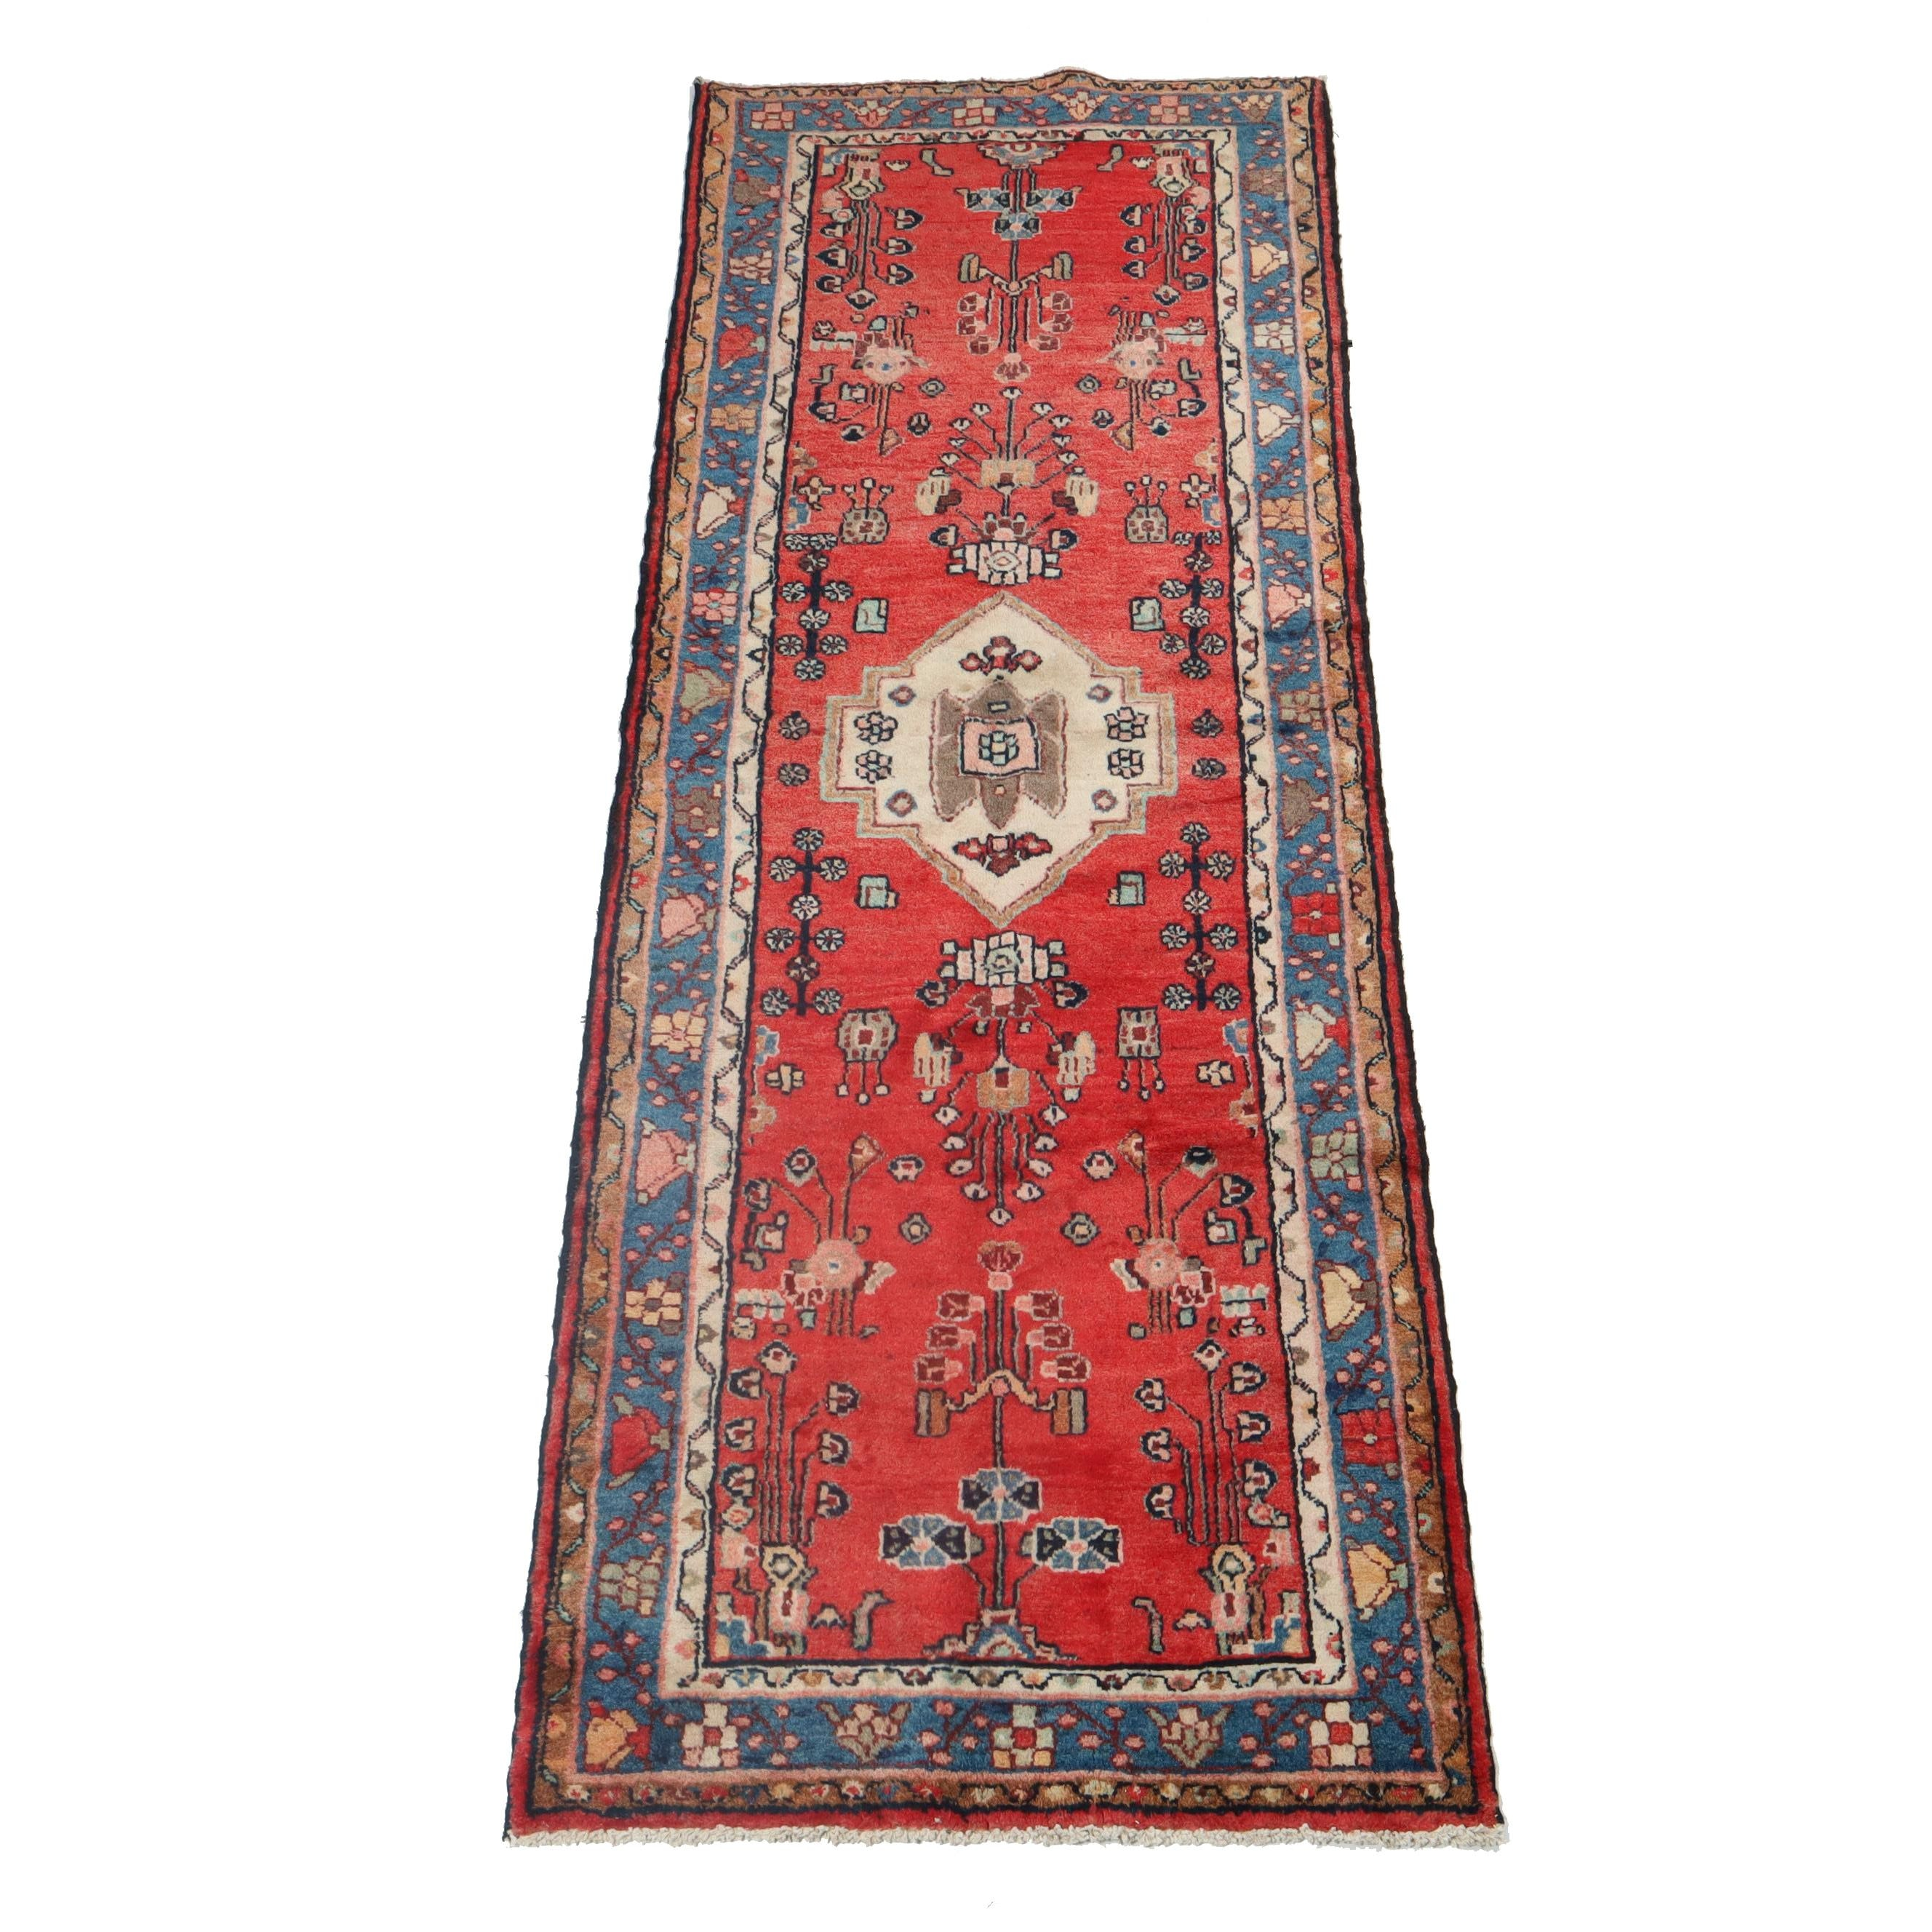 3.4' x 9.1' Hand-Knotted Persian Lilihan Carpet Runner, Circa 1950s